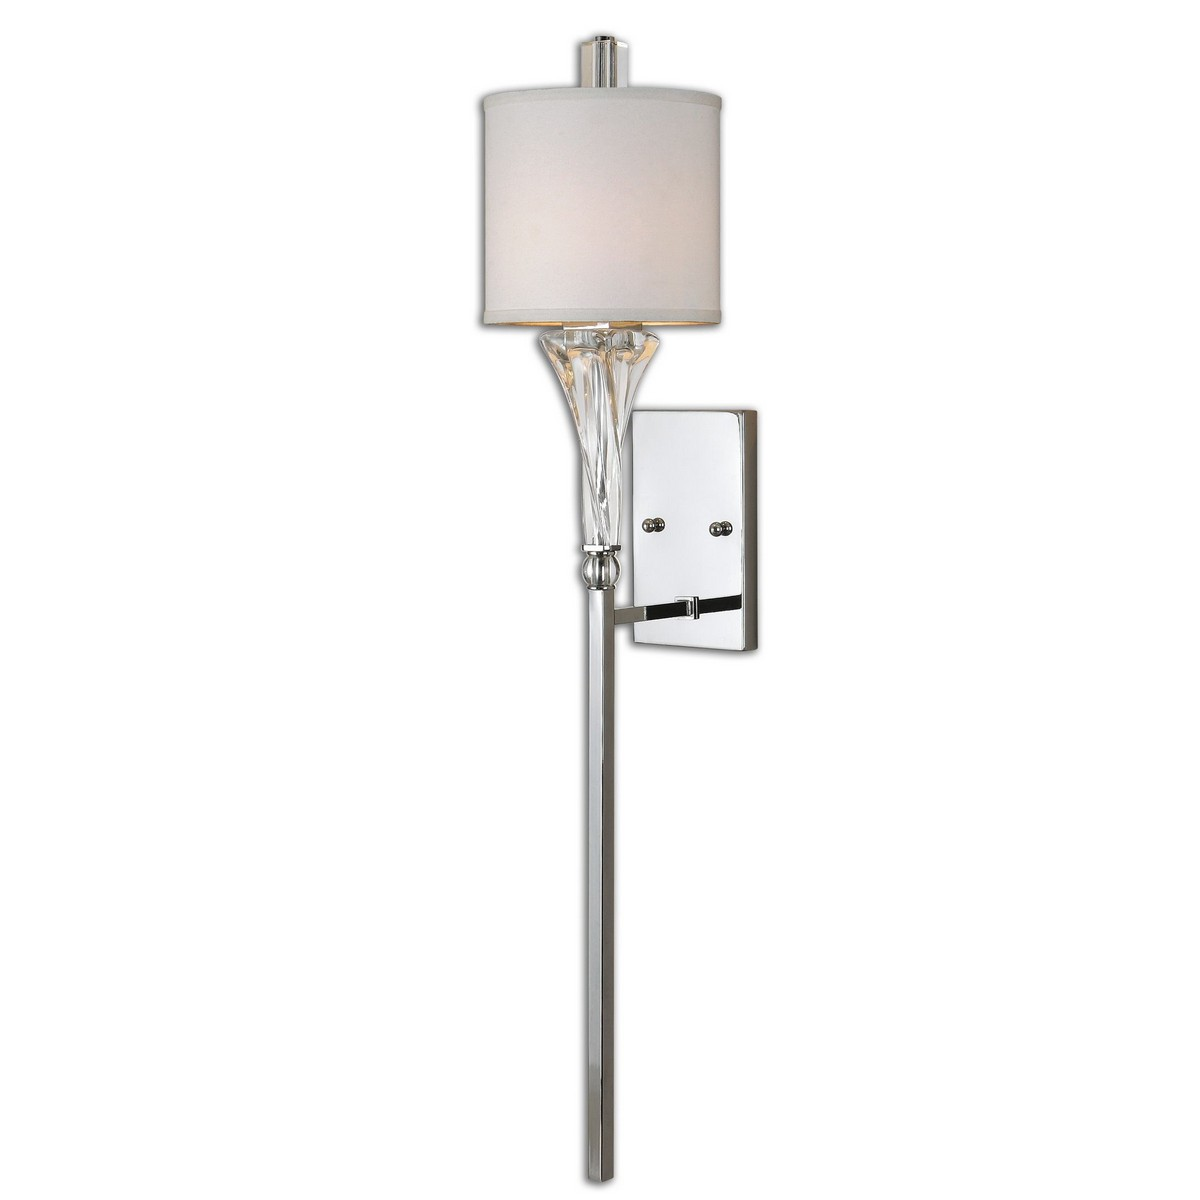 Uttermost Grancona 1 Light Chrome Wall Sconce UTTERMOST-22495 at Homelement.com